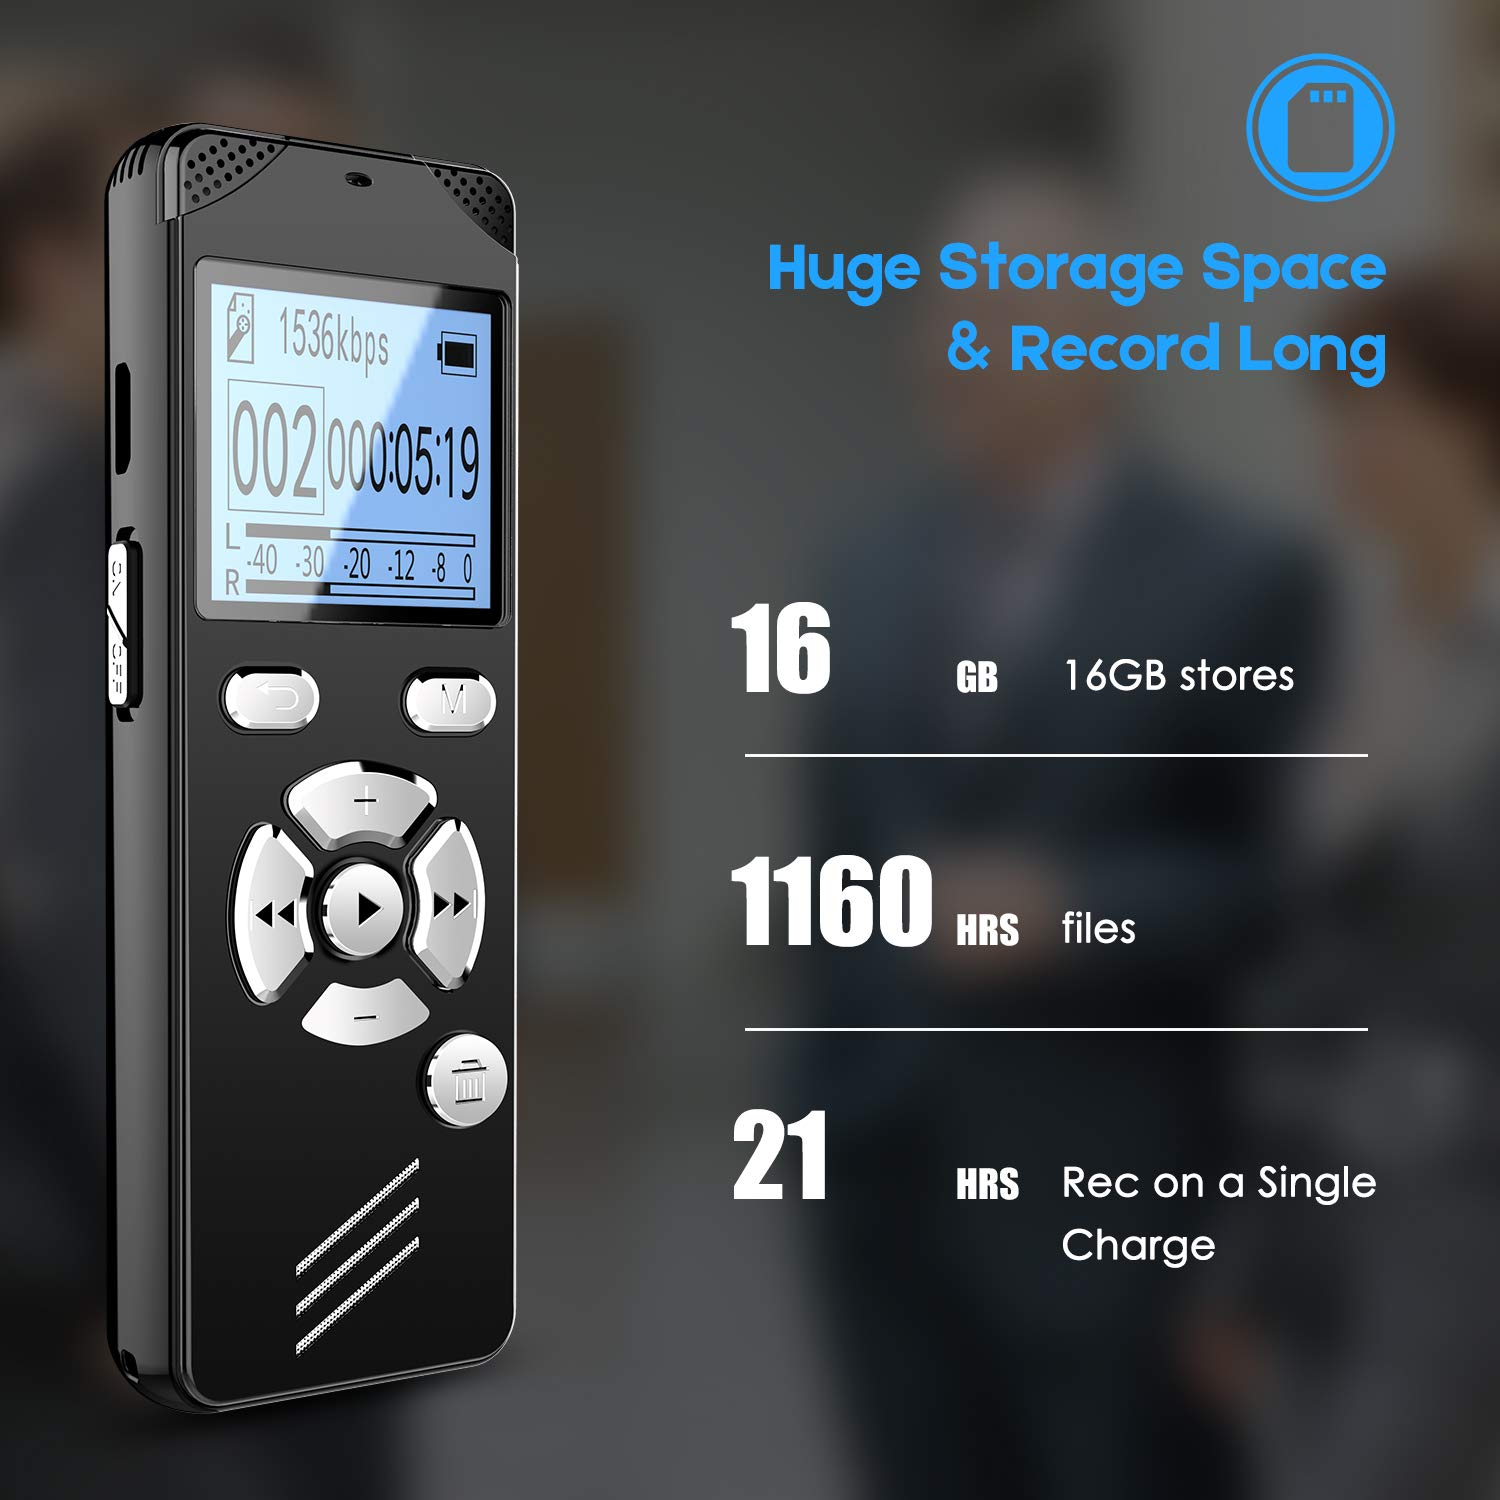 EVIDA 16GB Digital Voice Recorder with Playback for Lectures Meetings,Voice Activated Recording Device with USB Rechargeable,Password